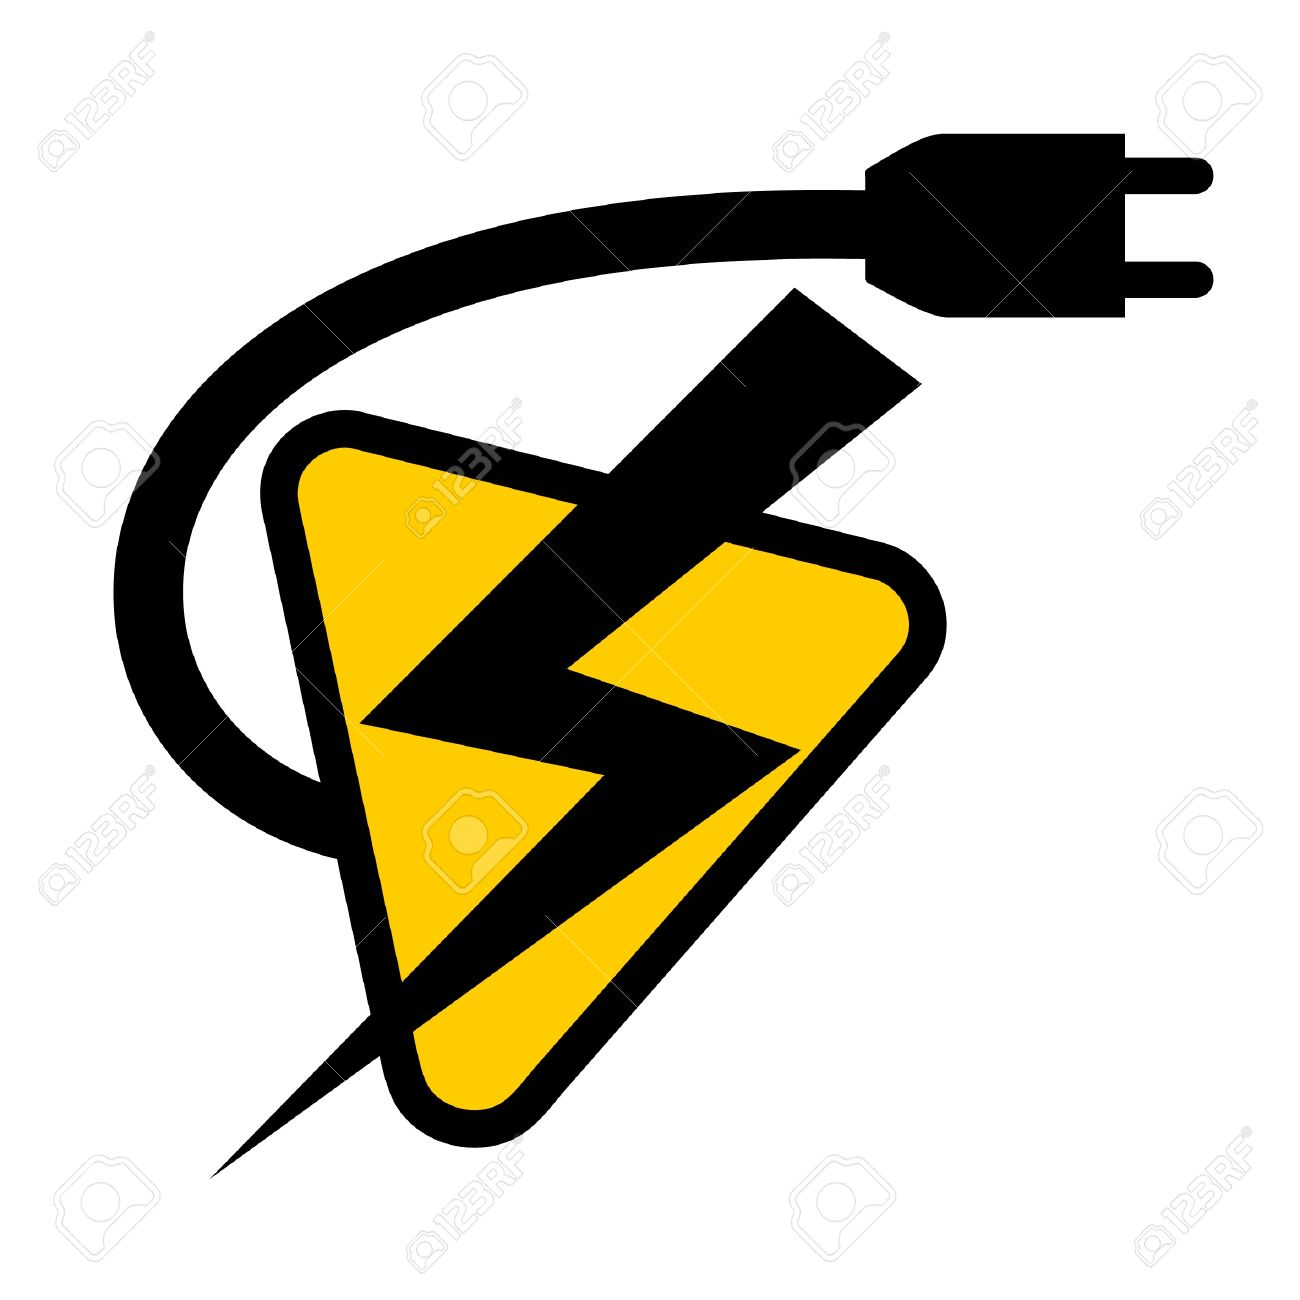 Symbol Electricity Dolgularcom 11573519 Battery Stock Vector Electric Icon Wire Clipart Plug Outlet Pencil